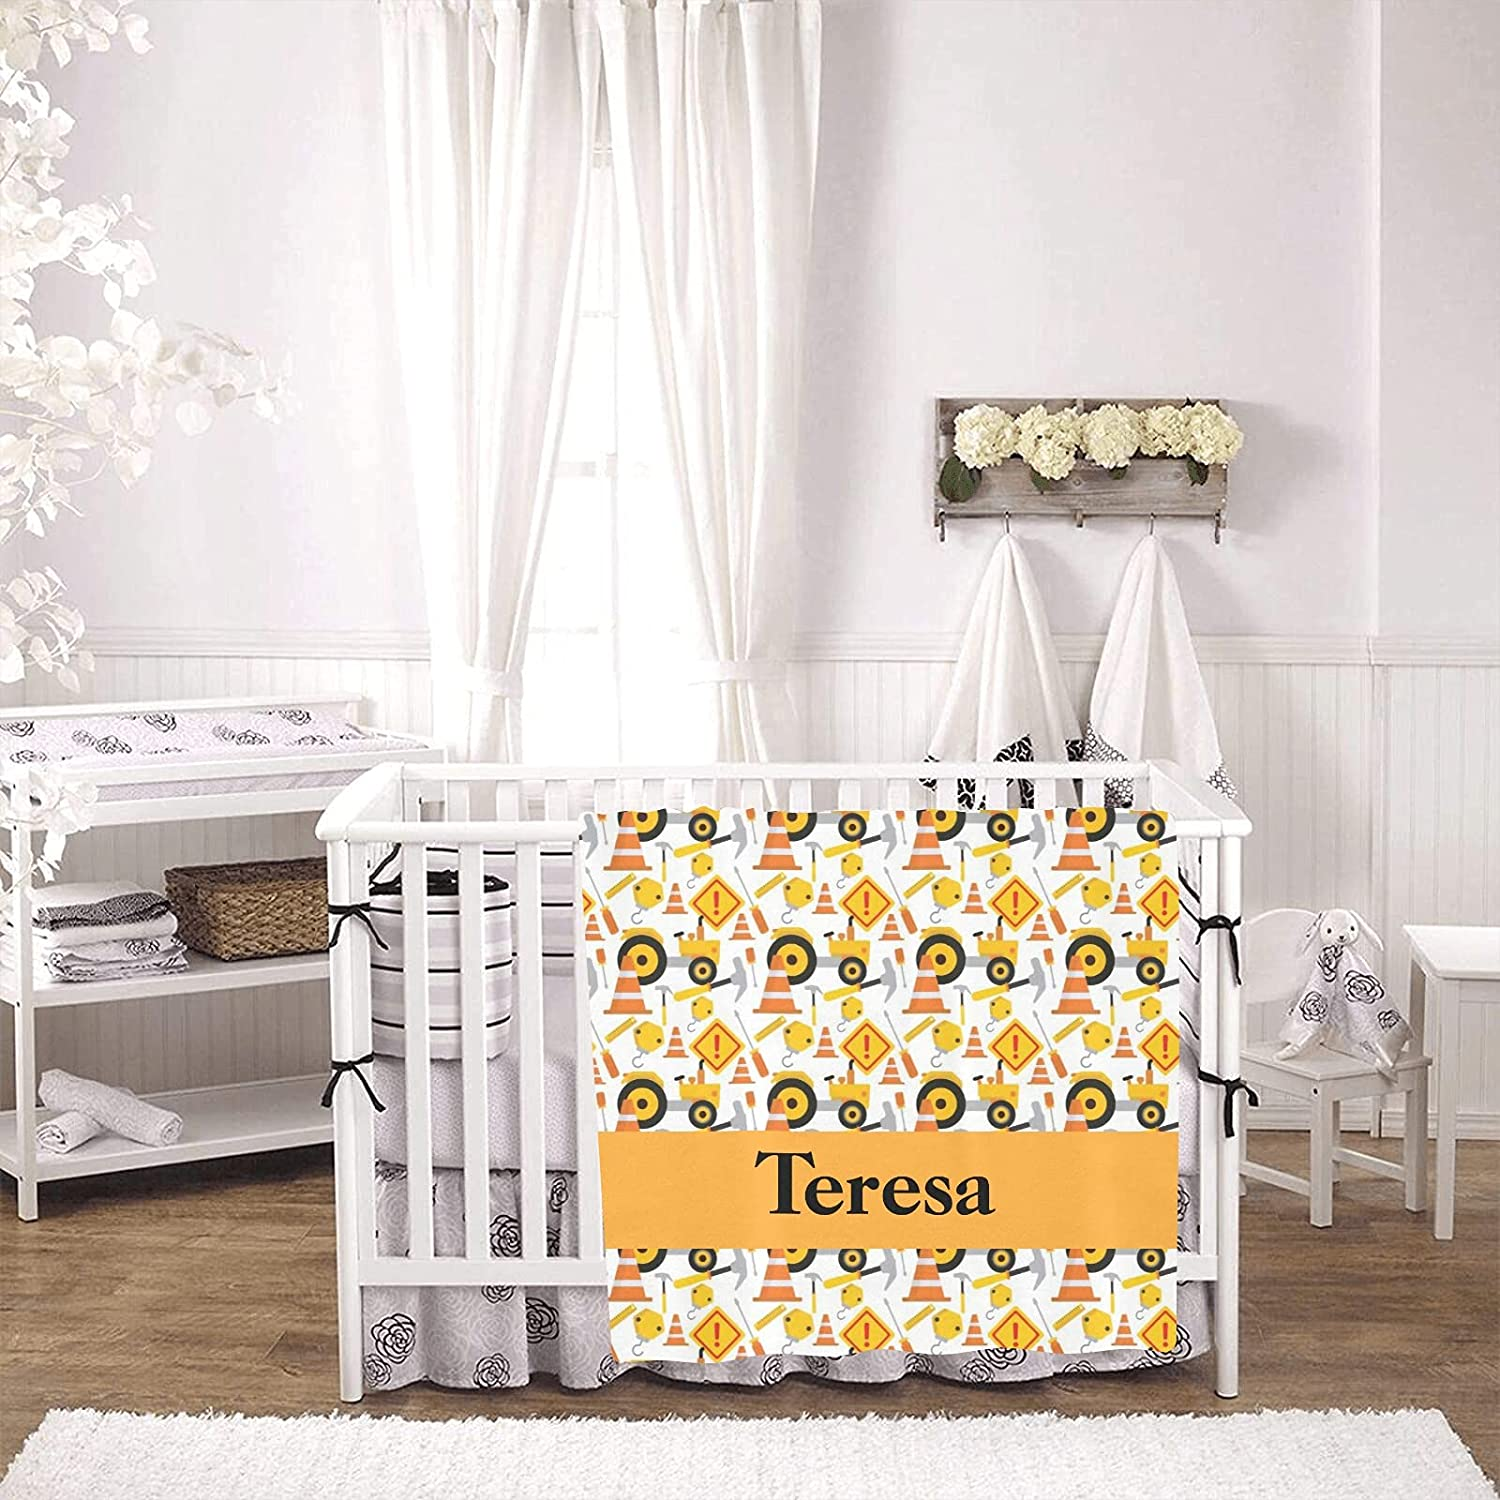 Seattle Mall Road Construction Personalized Ranking TOP3 Baby Blanket Boy and Girl Nursery